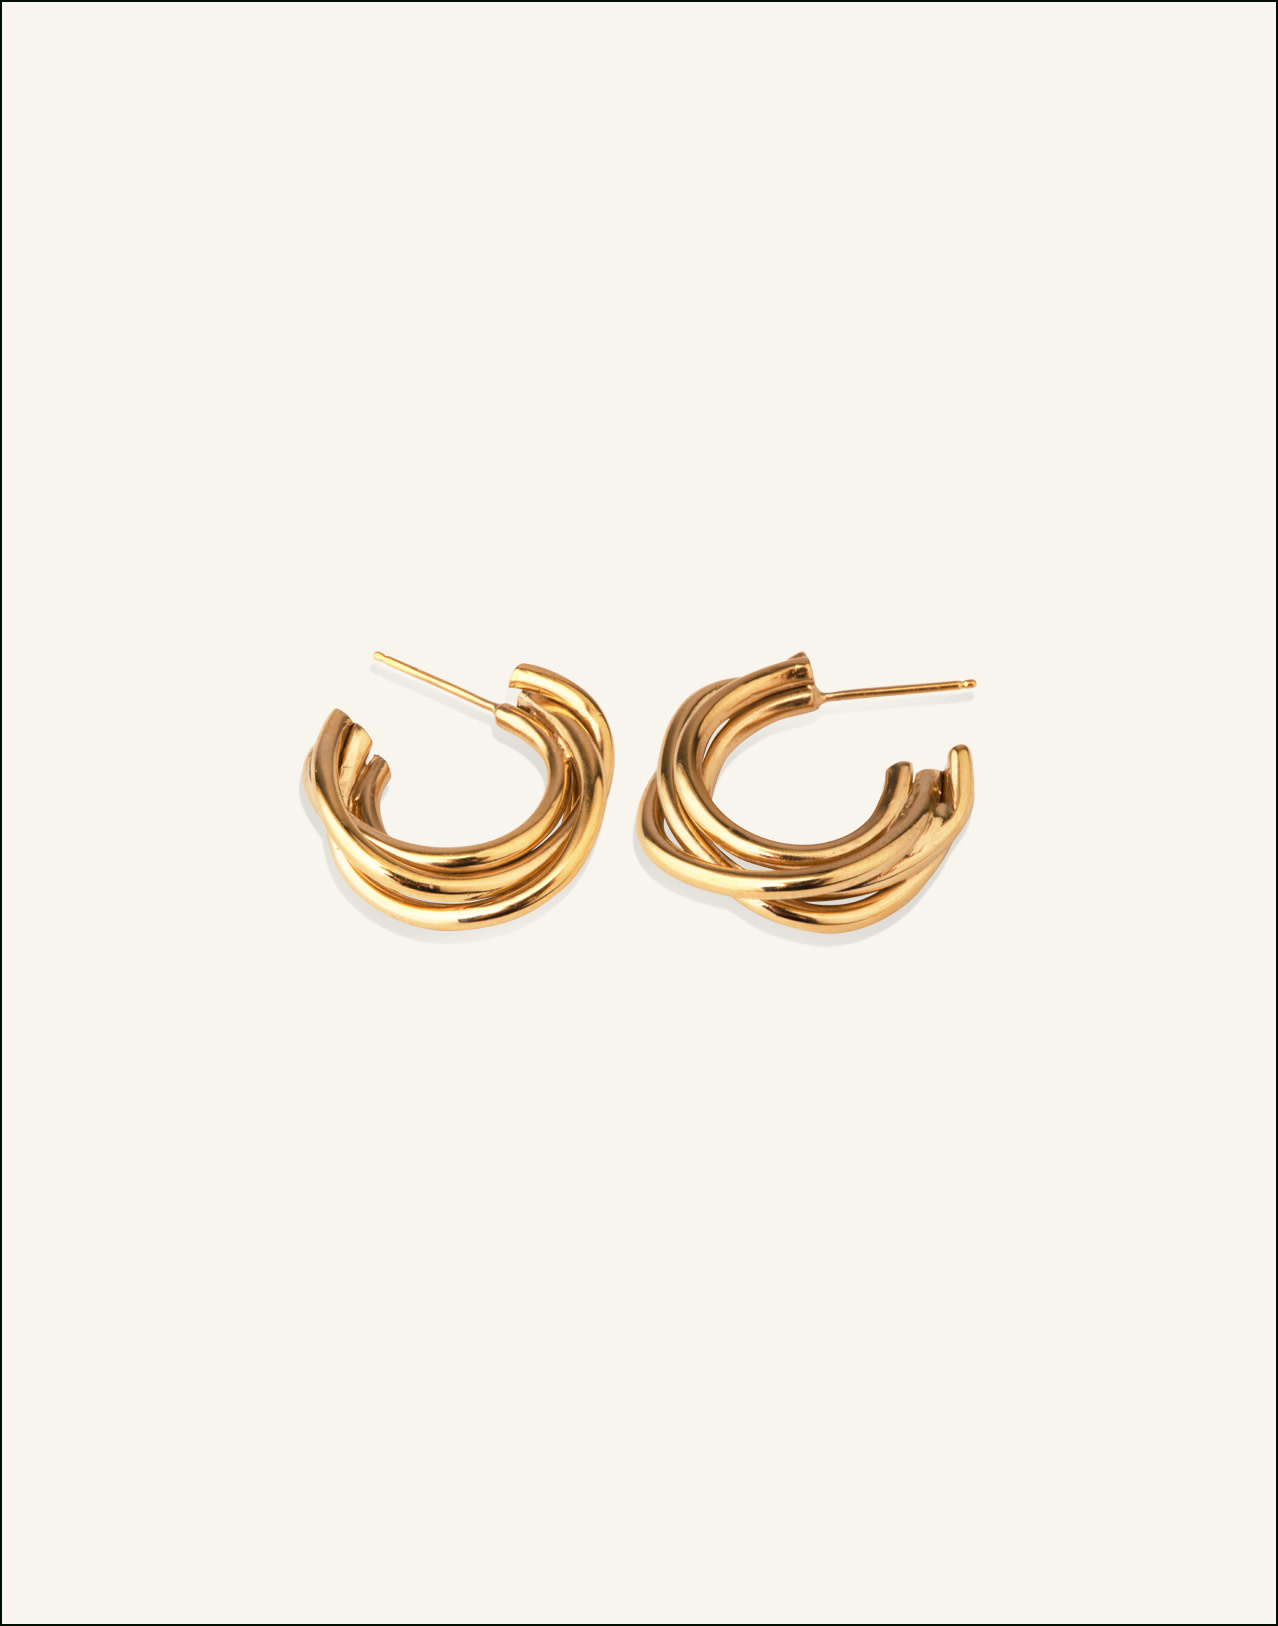 Completed Works Encounter Gold Vermeil Hoop Earrings